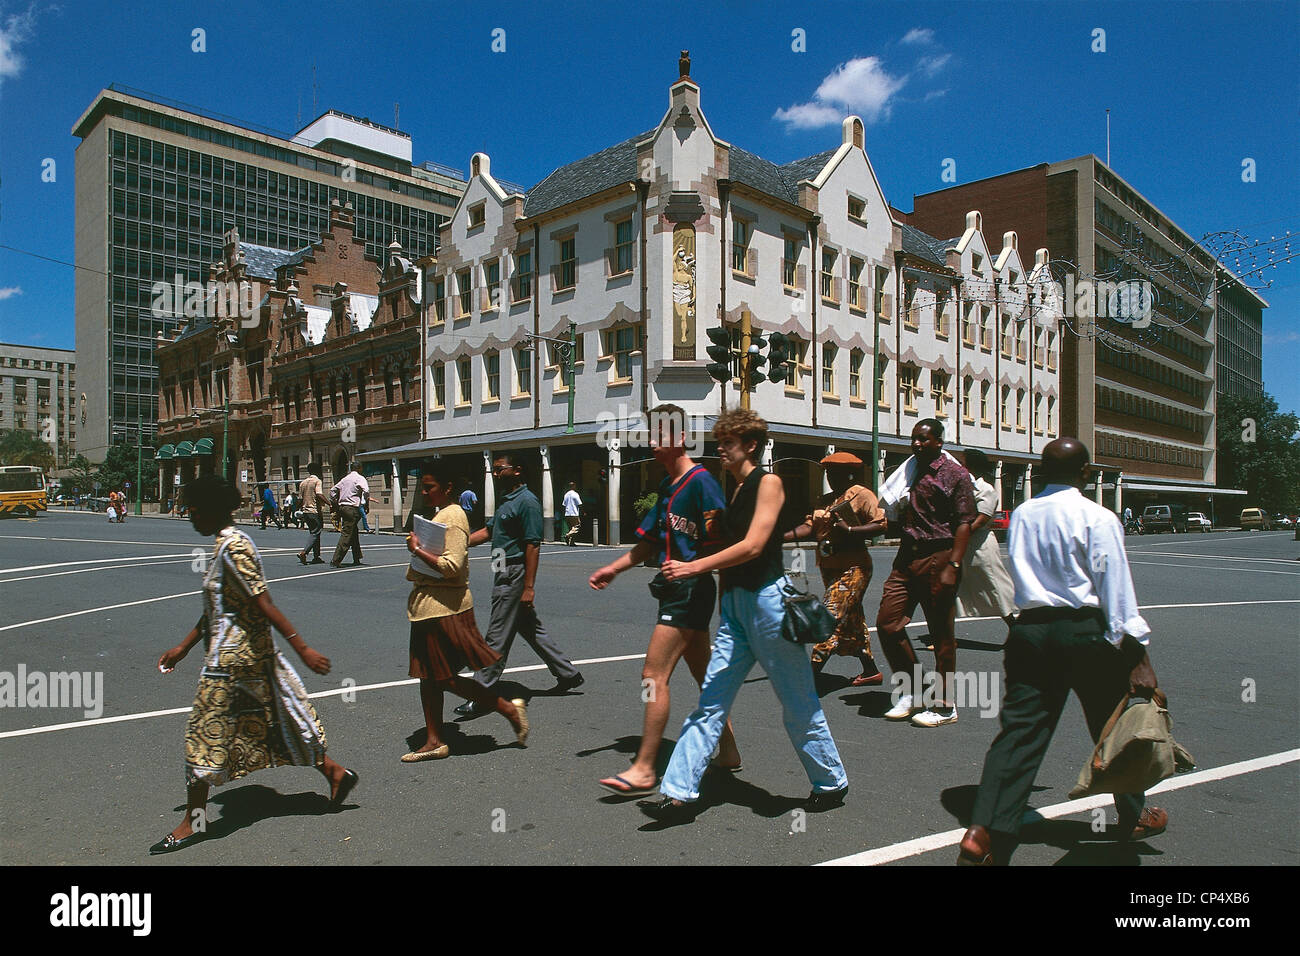 South Africa - Pretoria. Passers-by. - Stock Image